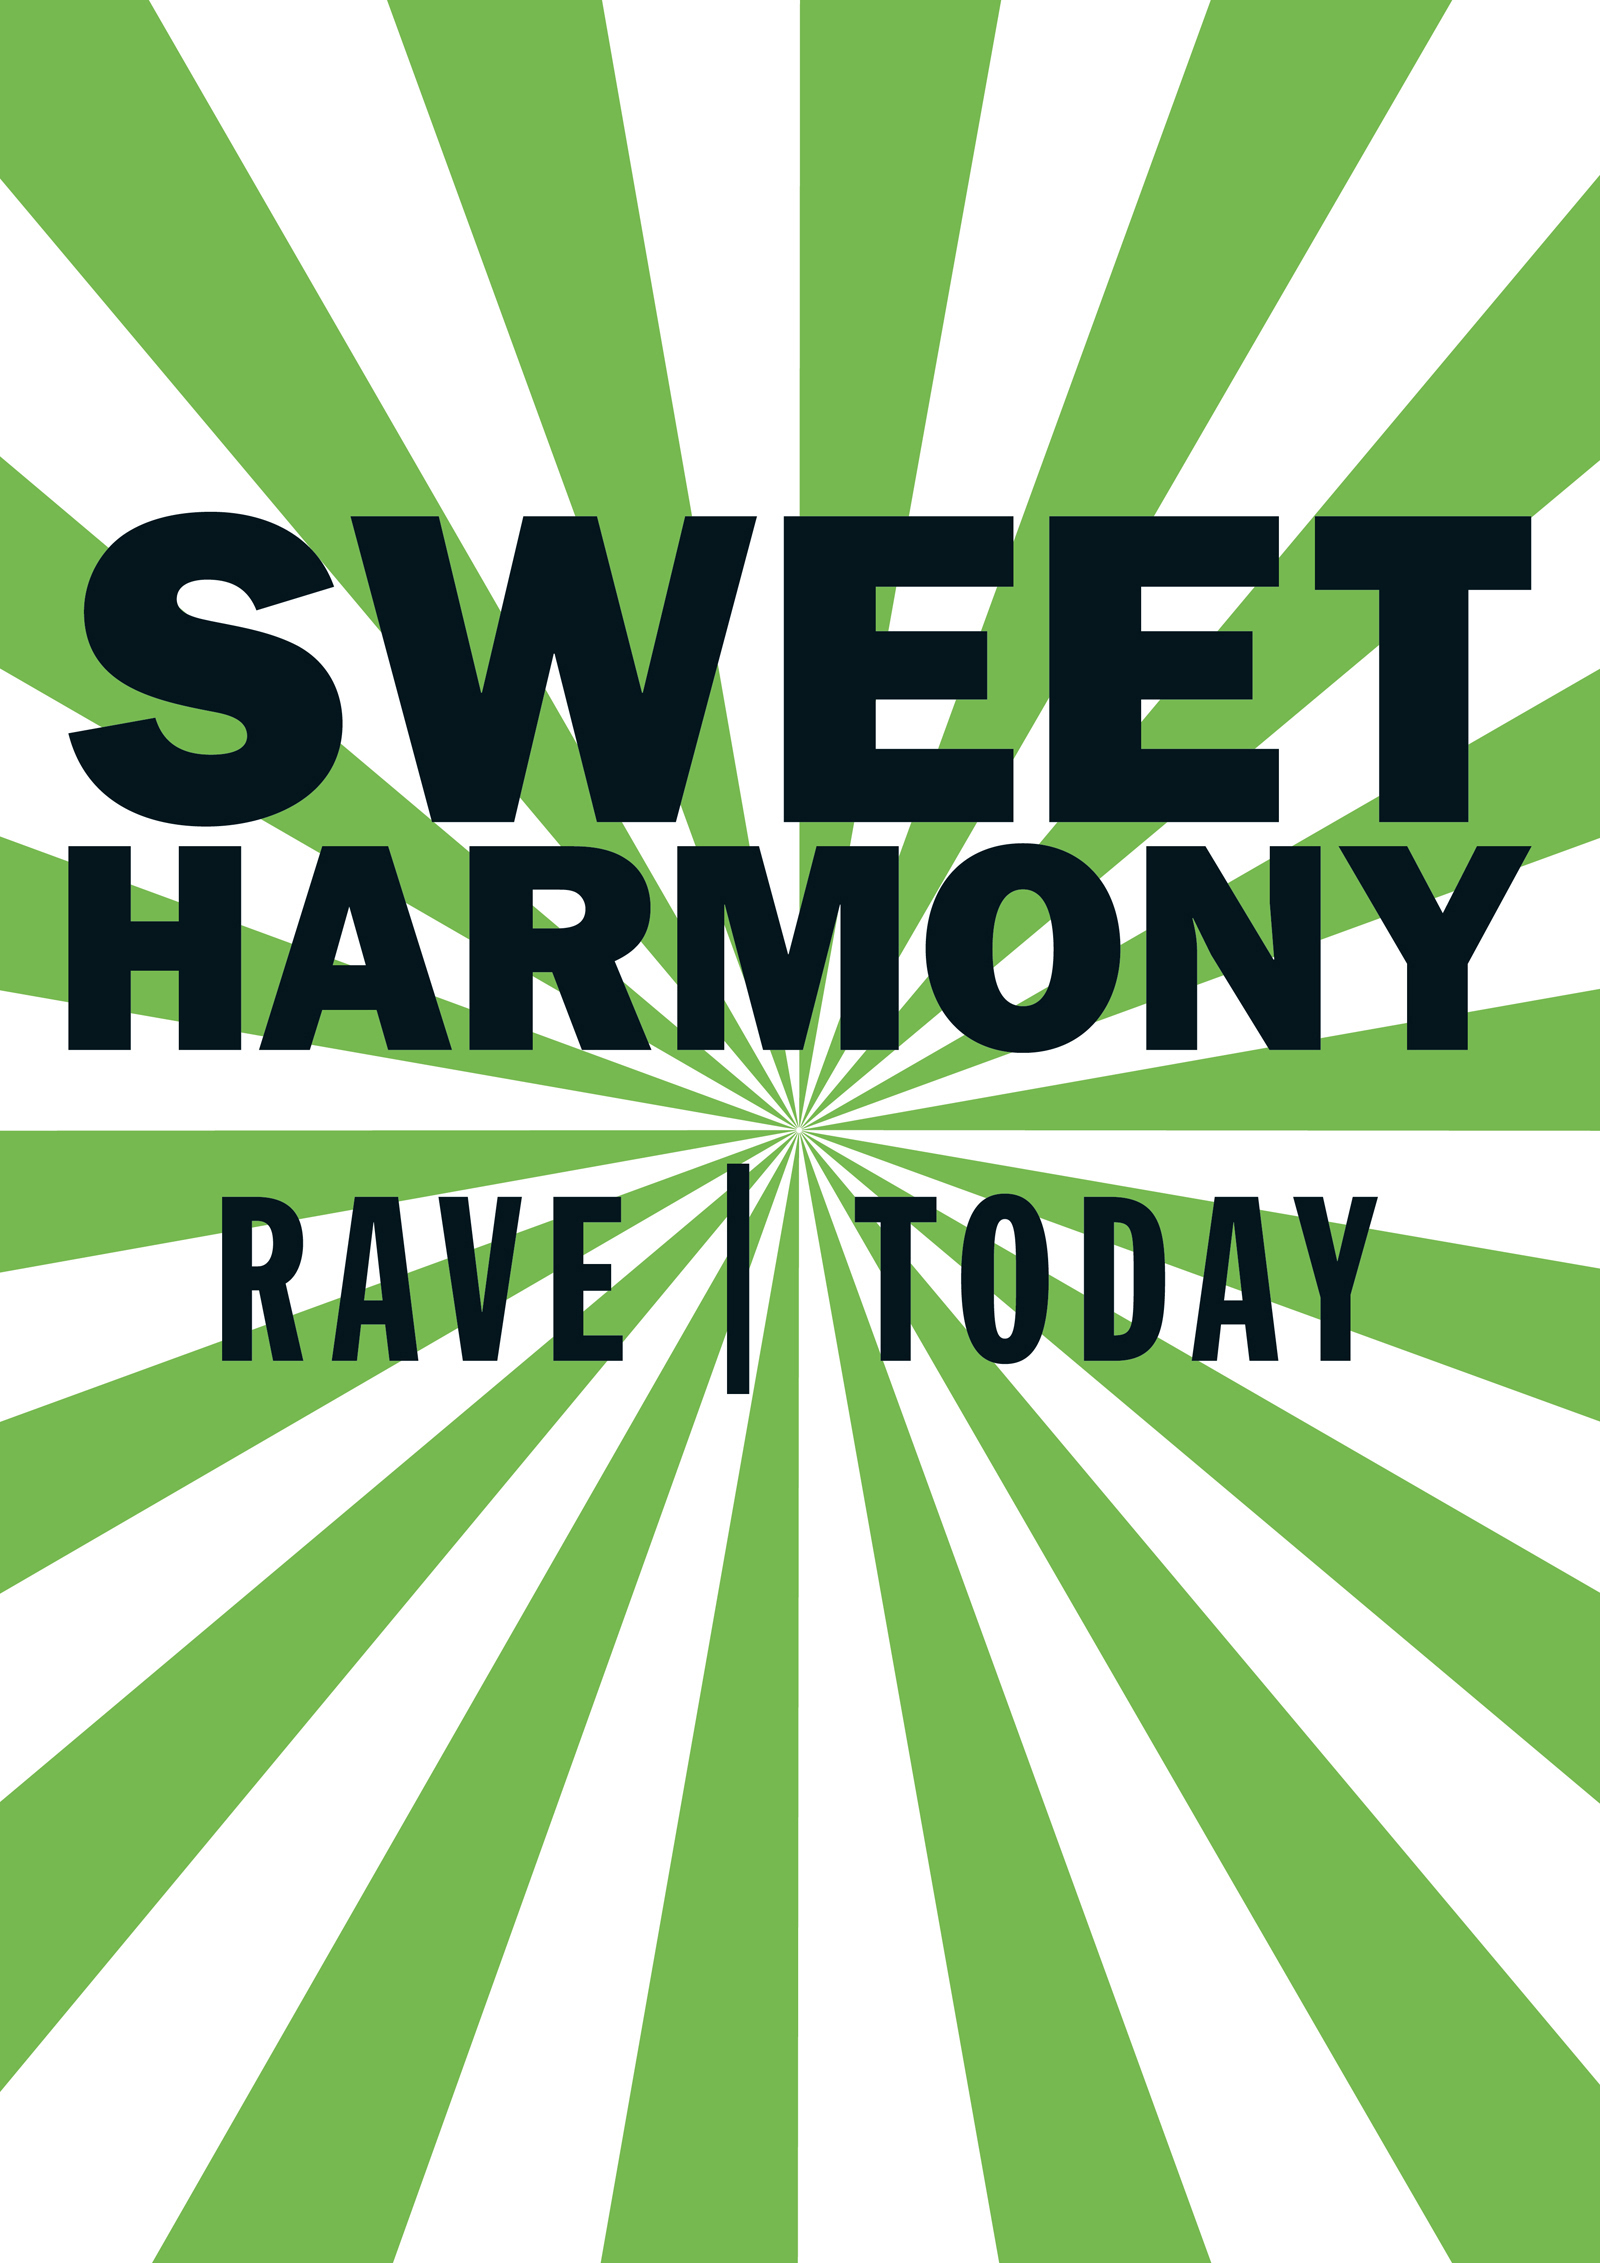 Sweet-Harmony-Saatchi-Gallery-Rave-Today-Teaser-Poster-James-Lee-Duffy.jpg